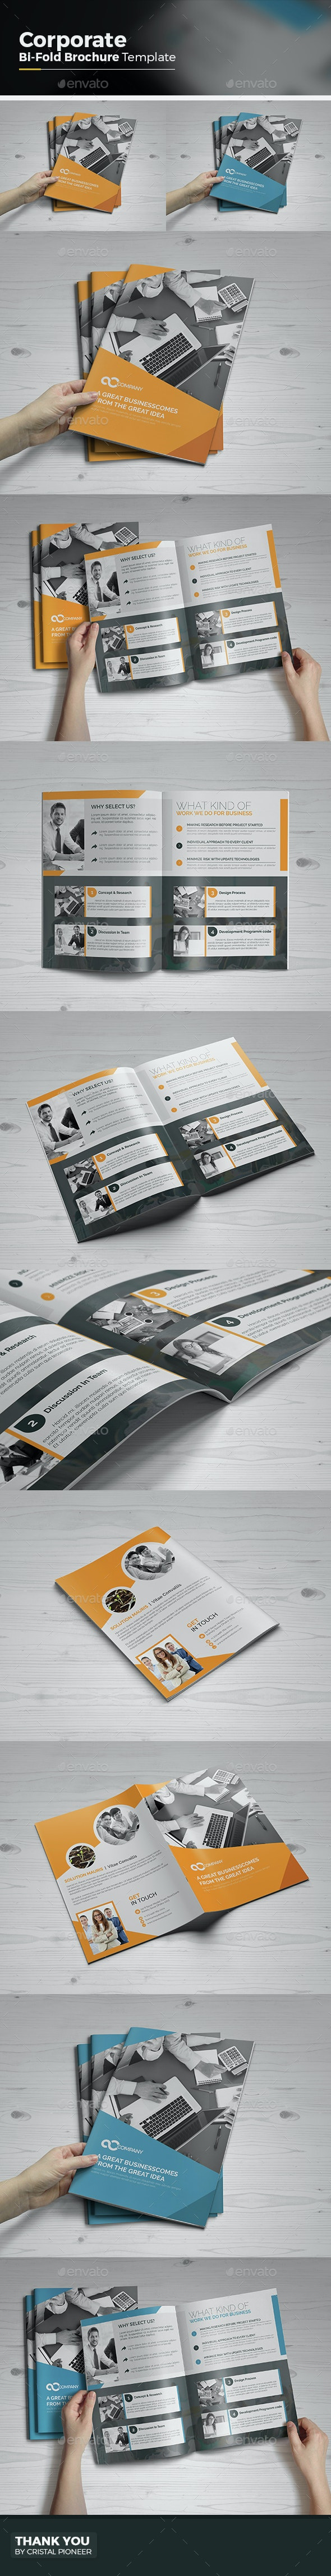 Bi-Fold Multipurpose Brochure - Corporate Brochures